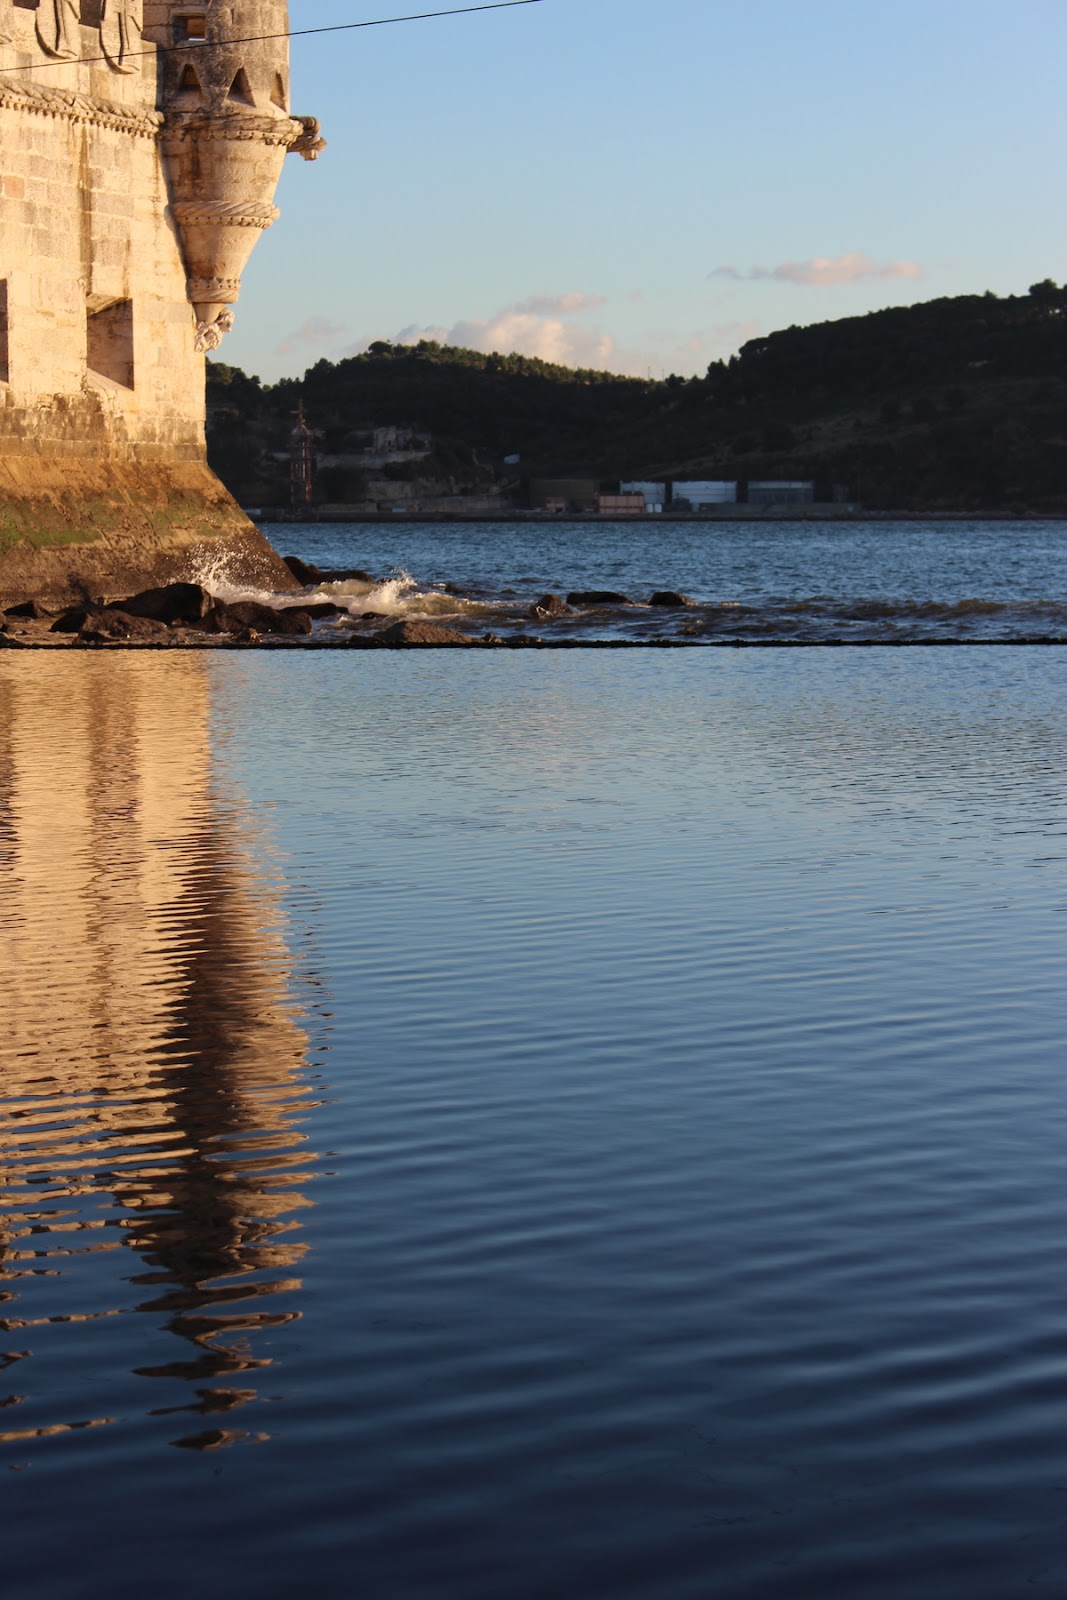 This is a cool shot of the reflection of the Belem Tower in the water.